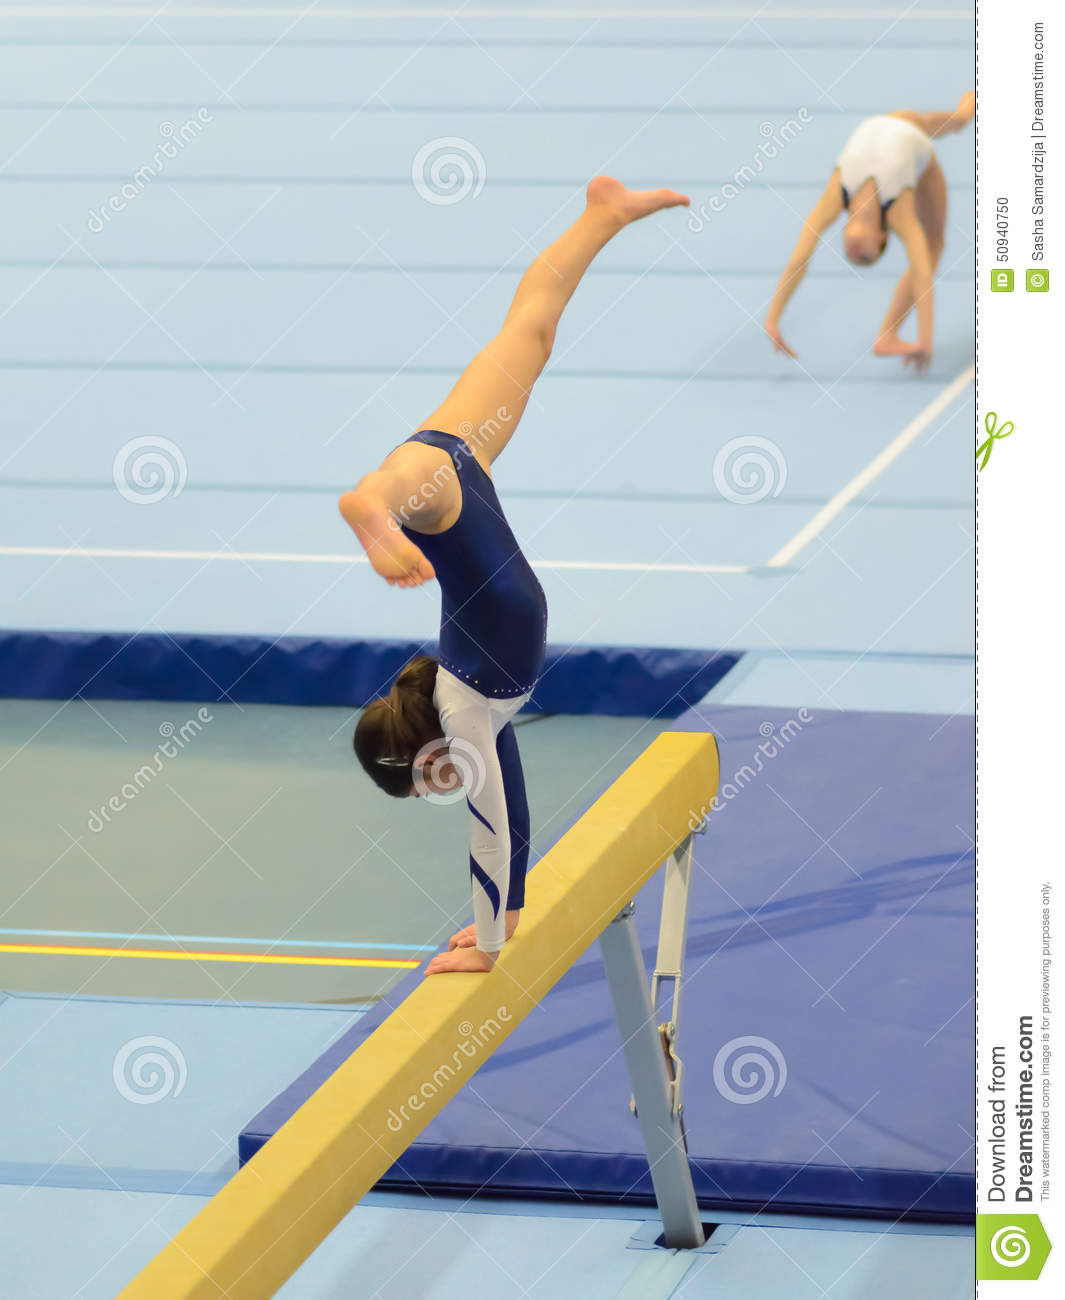 Young Gymnast Girl Performing Routine On Balance Beam